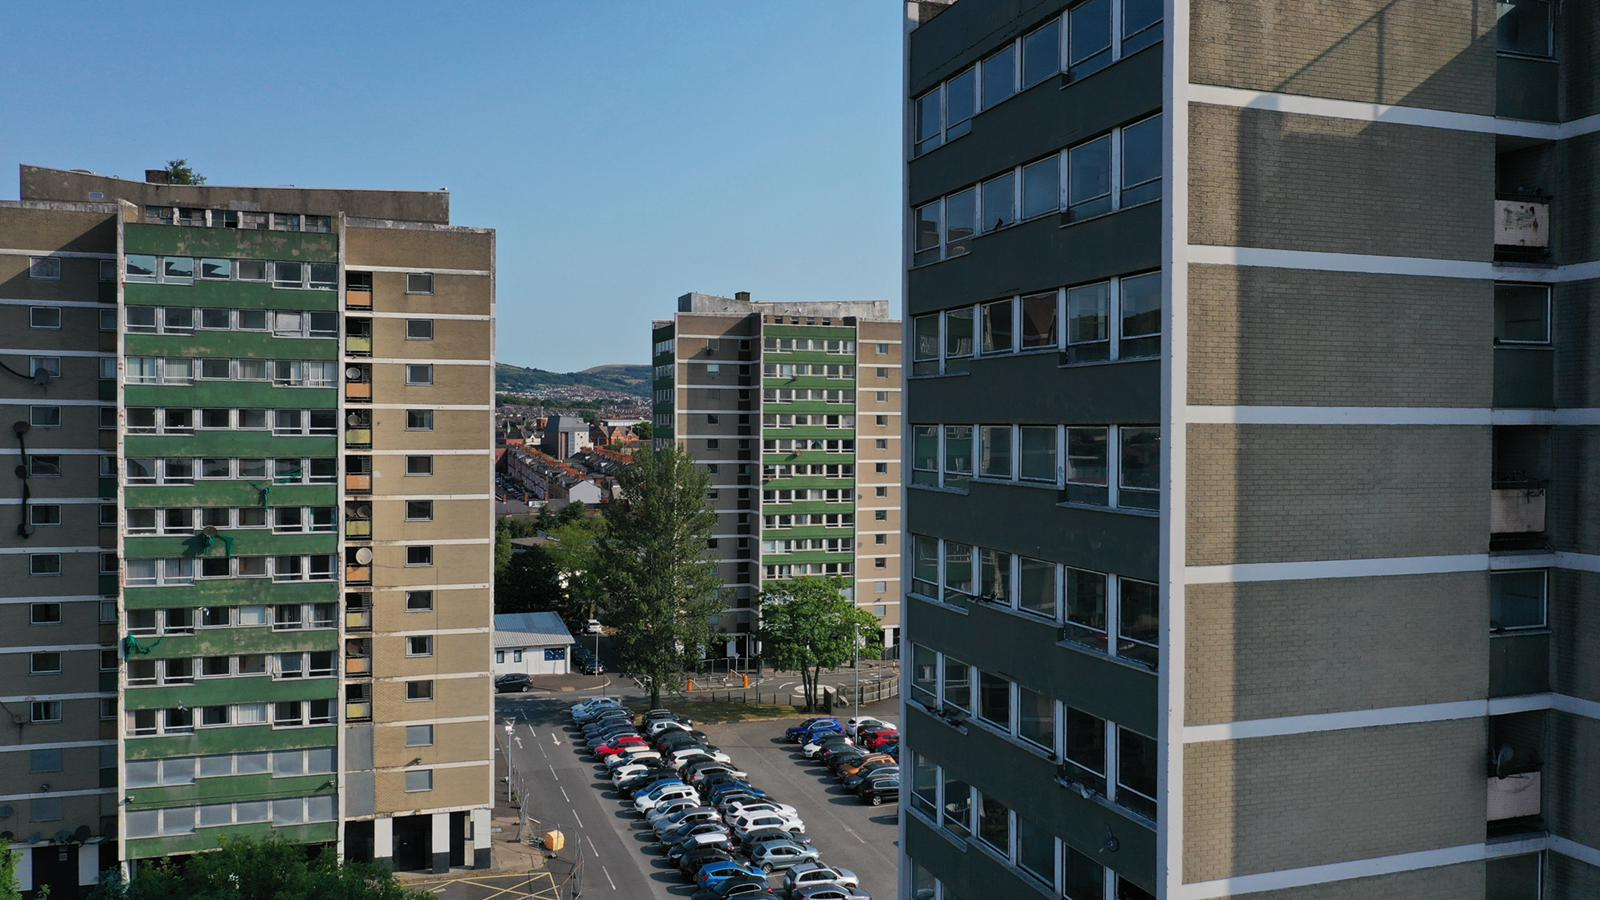 ABANDONED: 200 empty homes at dilapidated Broadway Towers